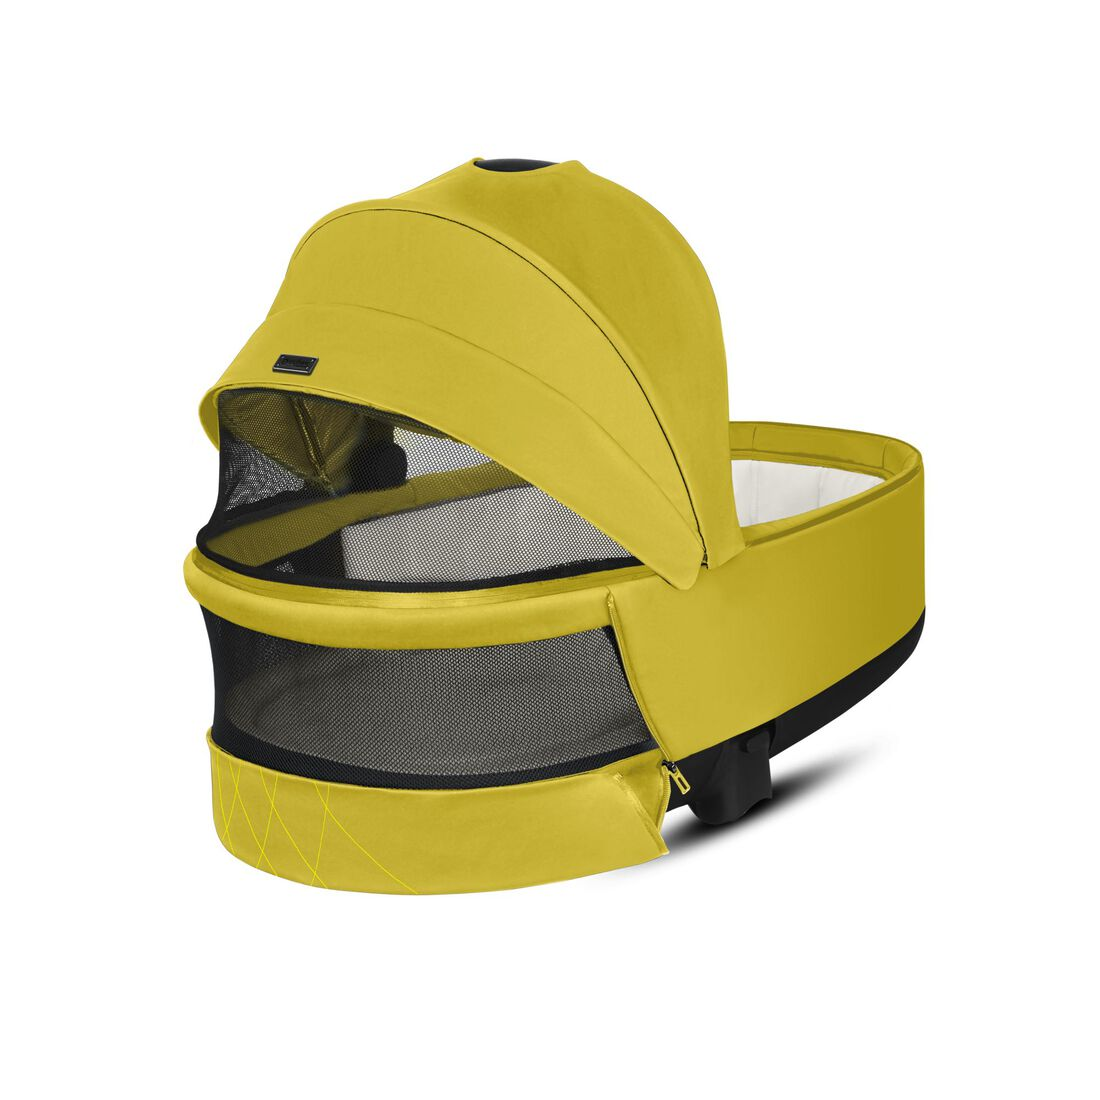 CYBEX Priam Lux Carry Cot - Mustard Yellow in Mustard Yellow large image number 4